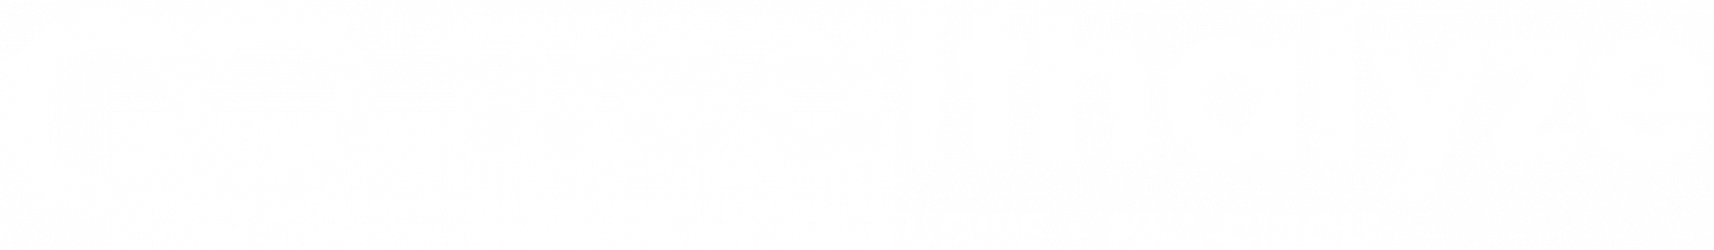 Wealthalyze